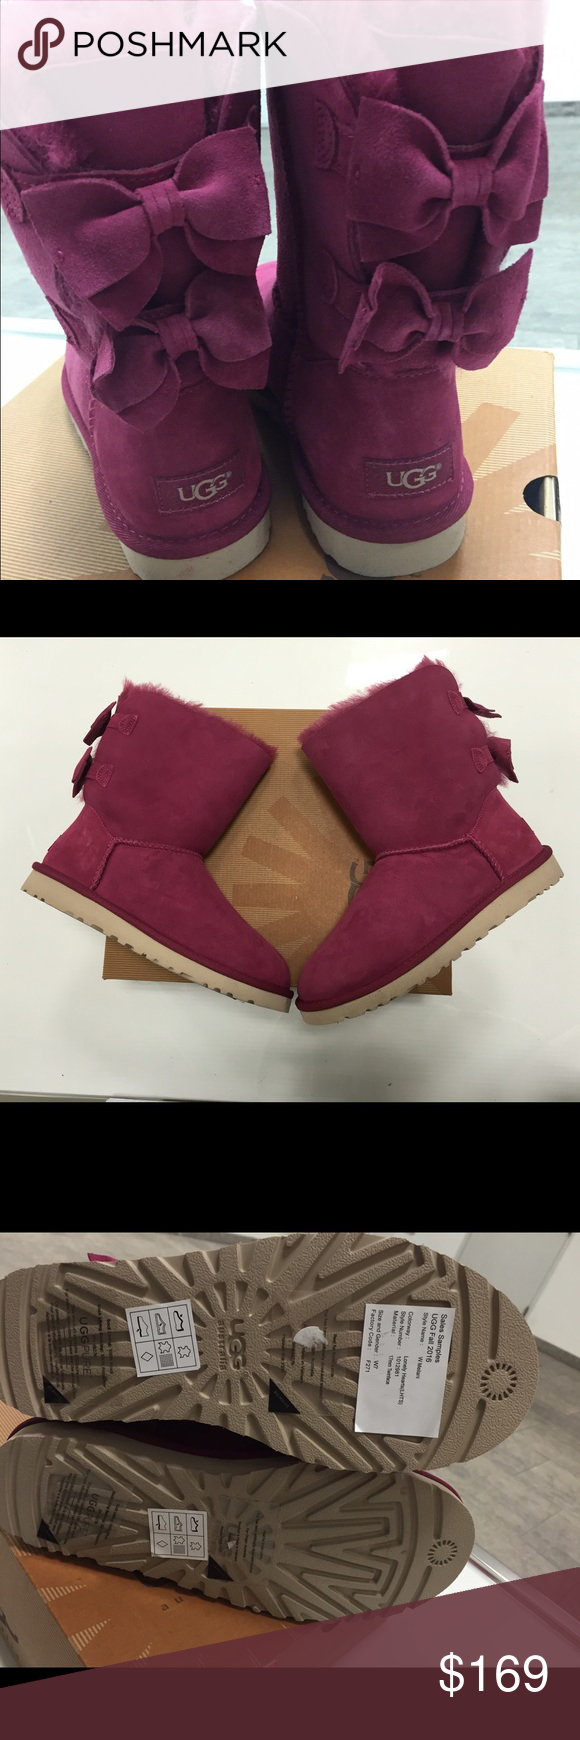 Ugg Meilani bow boots size 7 new Ugg Meilani bow boots size 7 .new without box ..New Fall 2016 item ..still selling full price at Nordstrom and all other department stores 100%Authentic ..please note these are a sample from Ugg australia so they do not have the logo hologram as it was removed to prevent returns ...100%authentic ✨ UGG Shoes Winter & Rain Boots